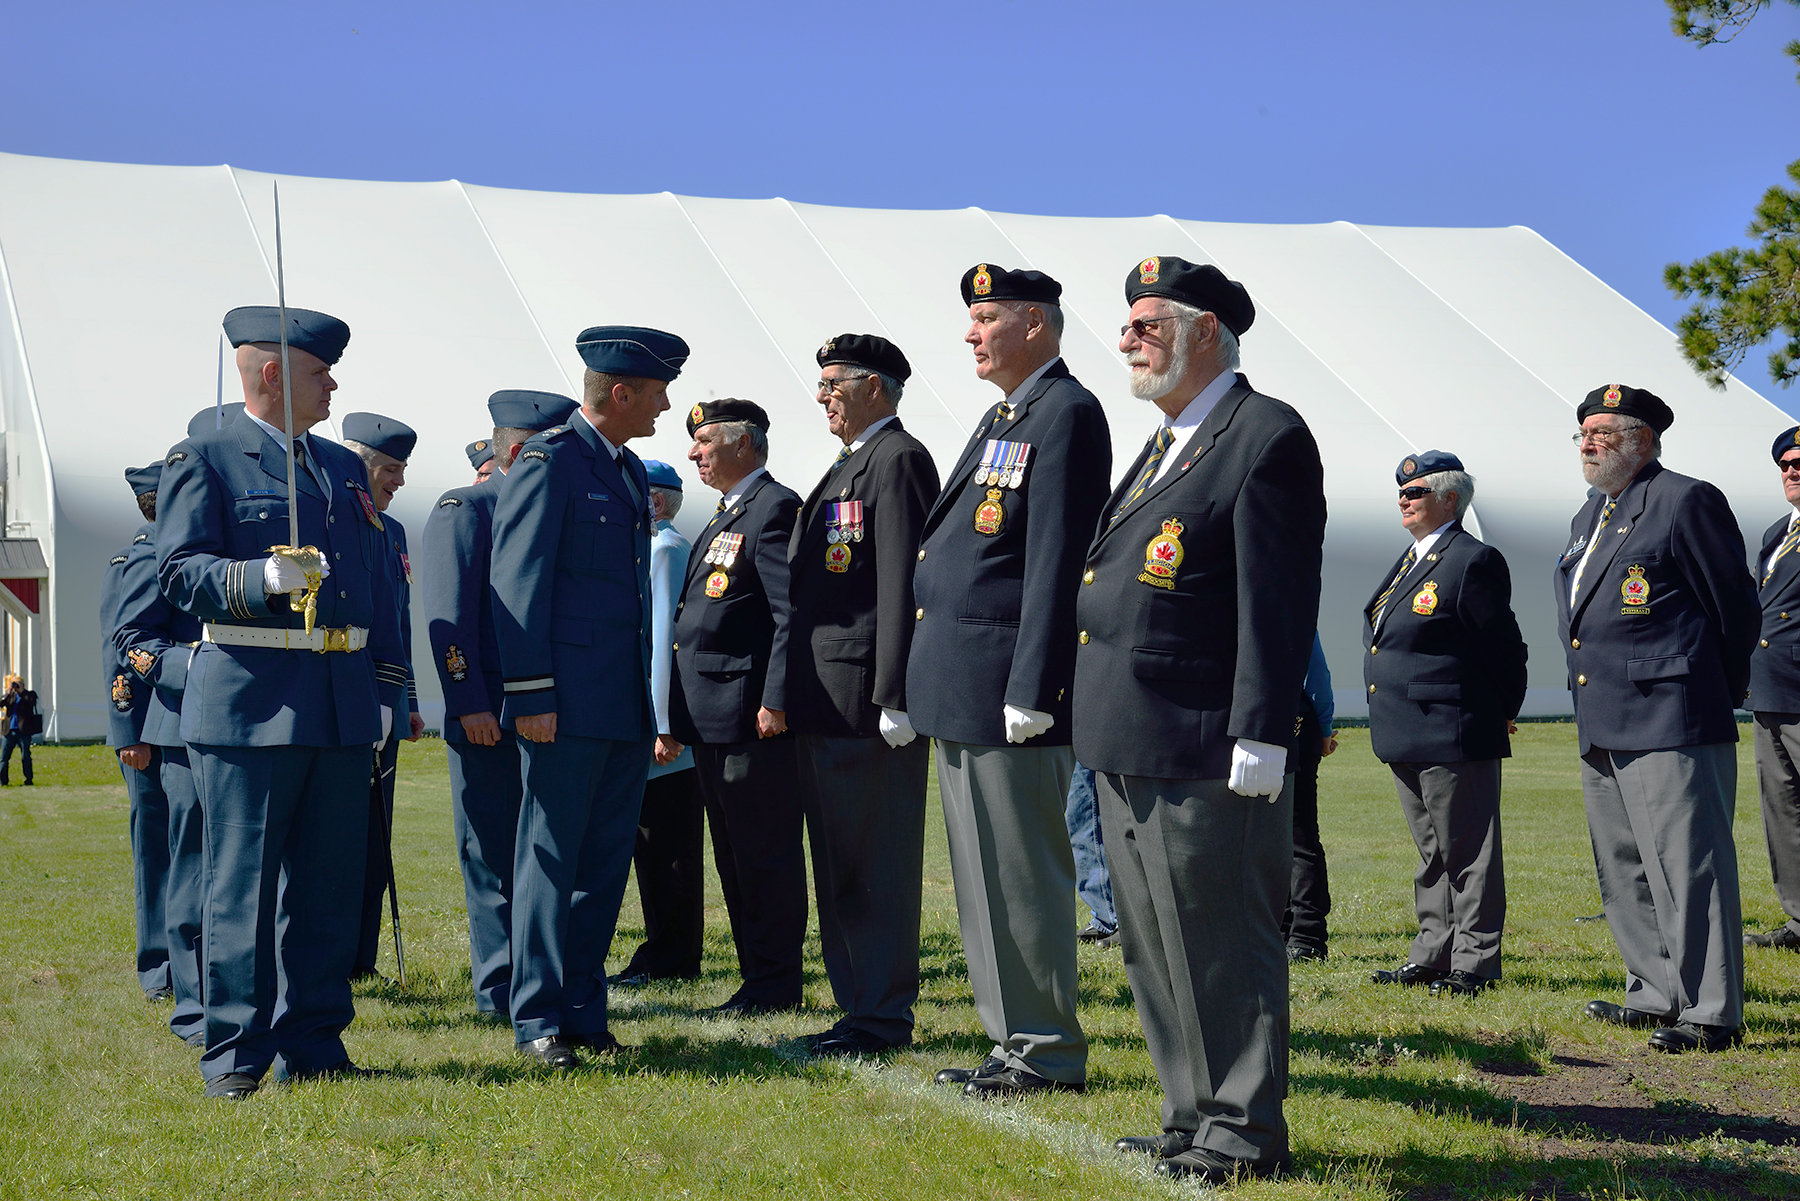 On the occasion of the June 3, 2017, rededication of the newly rebuilt Royal Canadian Air Force Memorial at 16 Wing/Canadian Forces Base Borden, Ontario, reviewing officer Brigadier-General David Cochrane, 2 Canadian Air Division Commander, inspects the veterans flights with Lieutenant-Colonel Russell Defer, parade commander. PHOTO: Sergeant Christopher Bentley, BM01-2017-0174-28